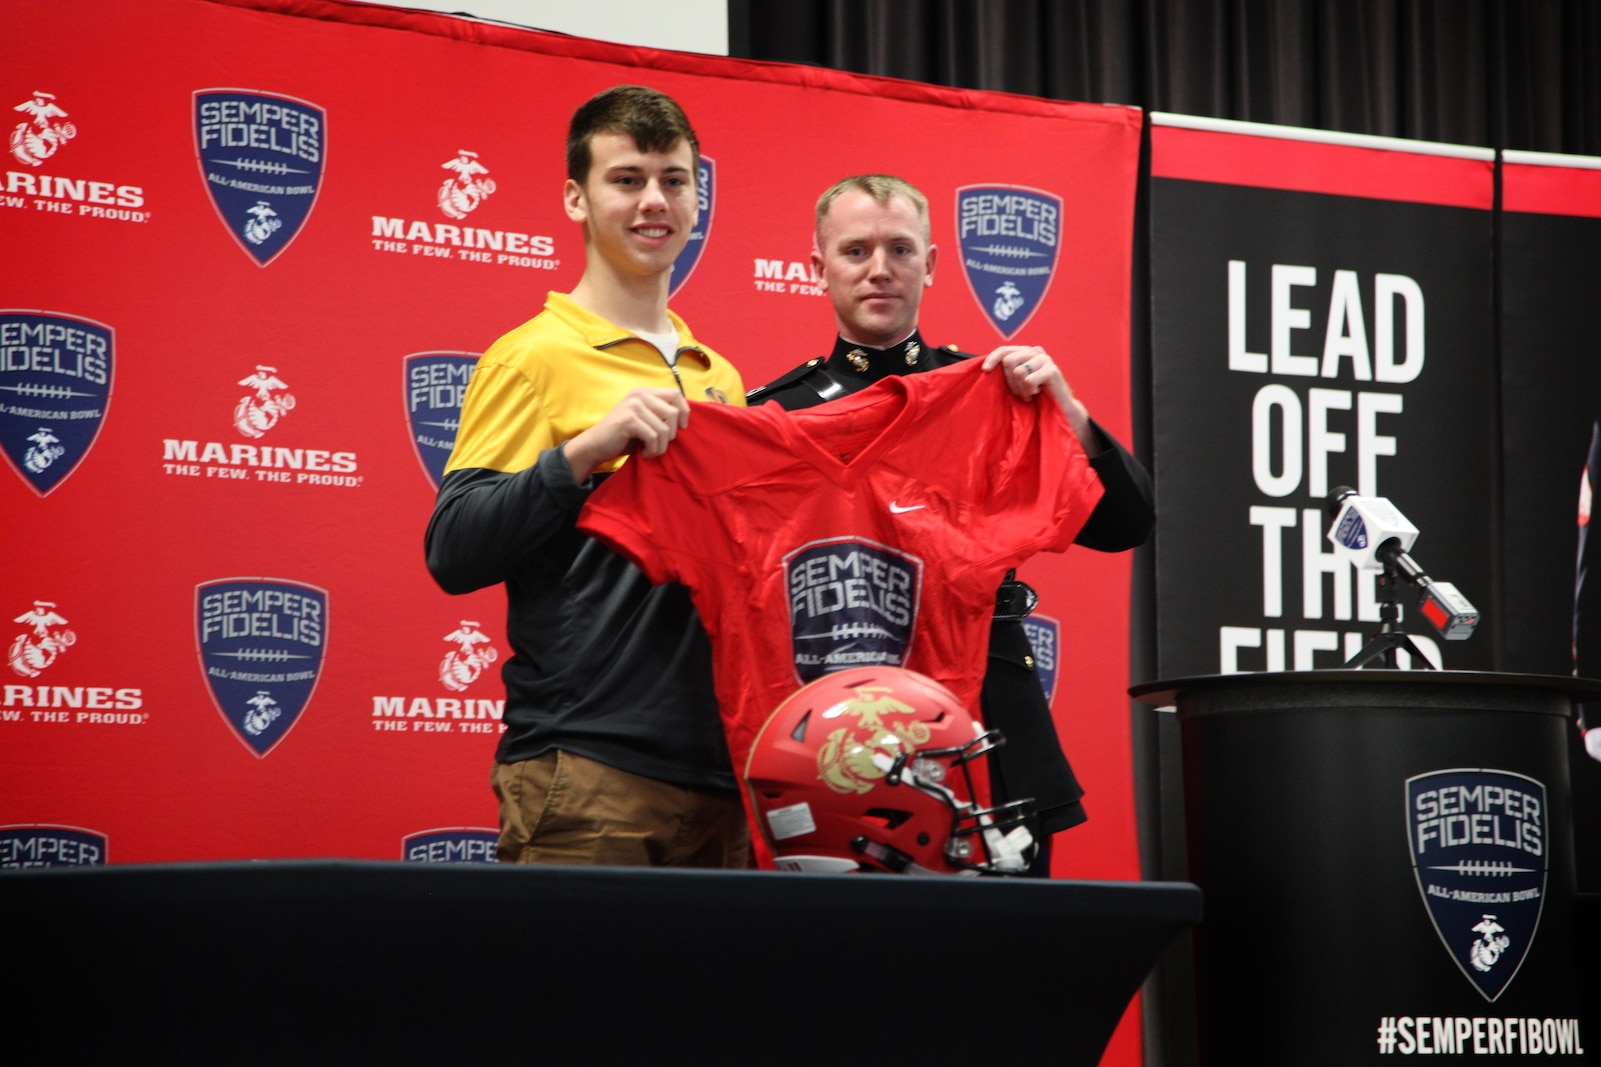 Capt. Ryan Kilkenny presents Tucker McCann his Semper Fidelis Bowl Game Jersey at a presentation at O'Fallon High School, O'Fallon, IL Dec. 2. Tucker, one of the top place kickers in the nation and University of Missouri commit, will play for the West Team during the 5th annual Semper Fidelis Bowl Game in Carson, CA.